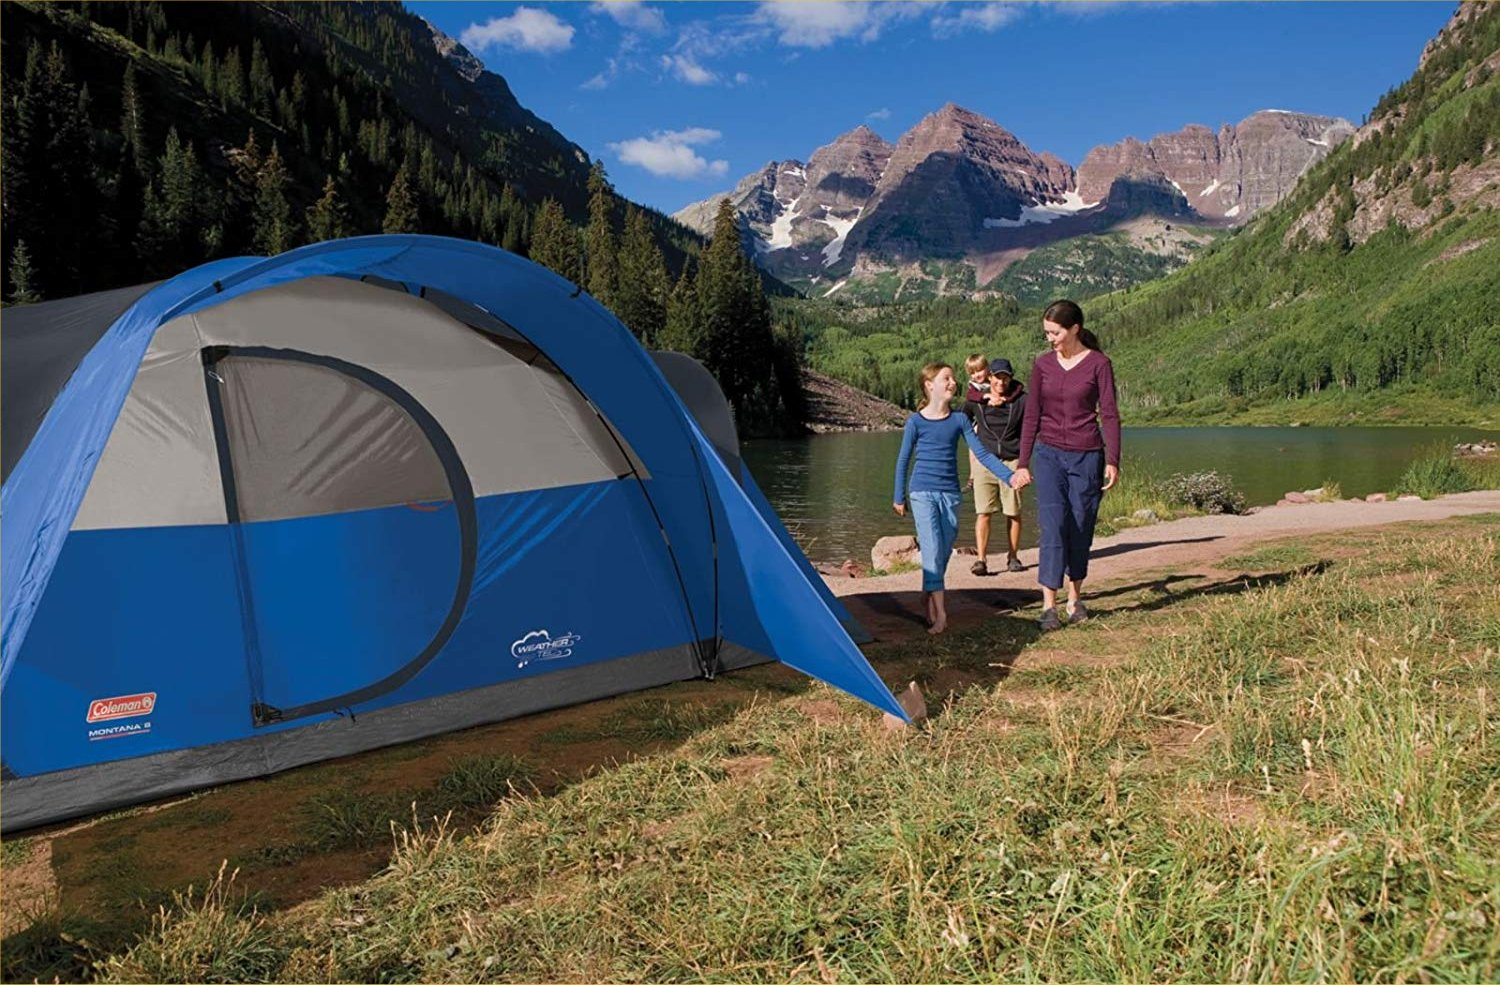 Coleman Montana 8-Person Tent Review: The Best Family Tent Buy?